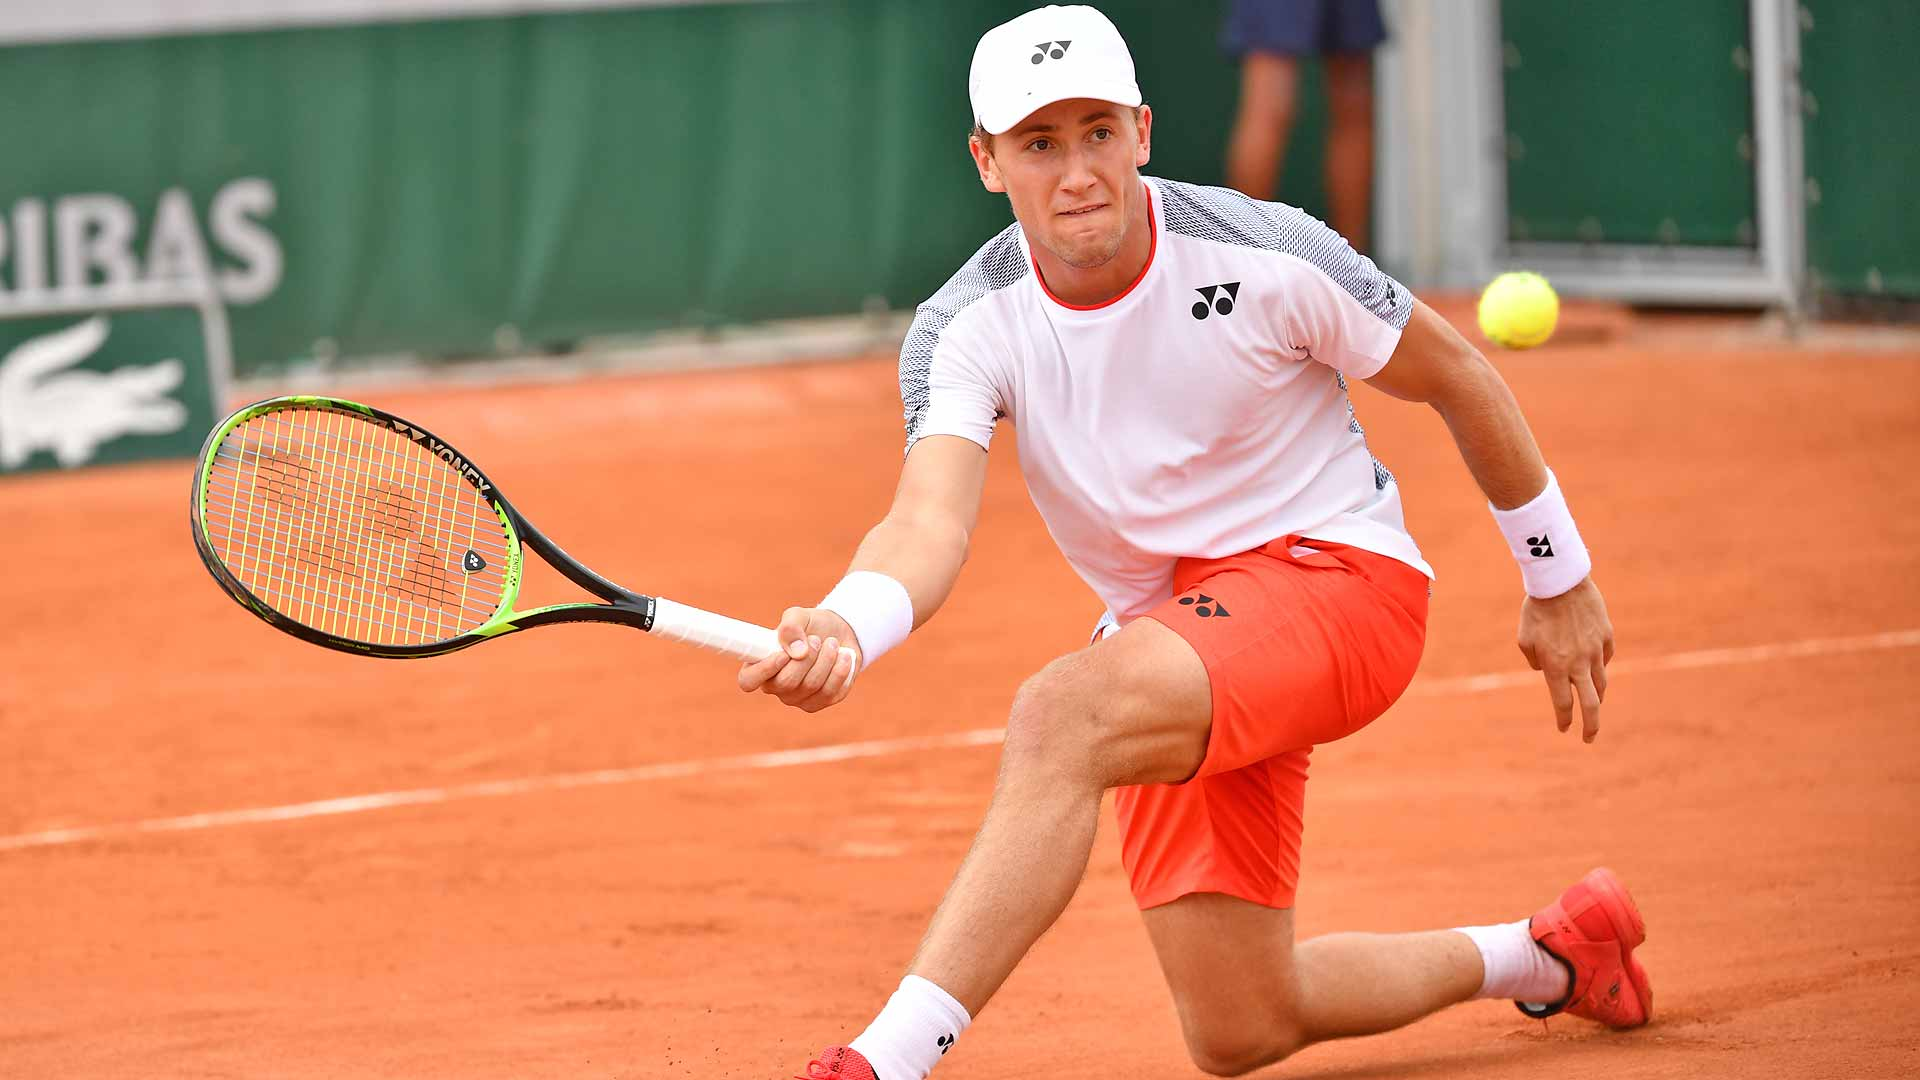 Casper Ruud slices a forehand at Roland Garros